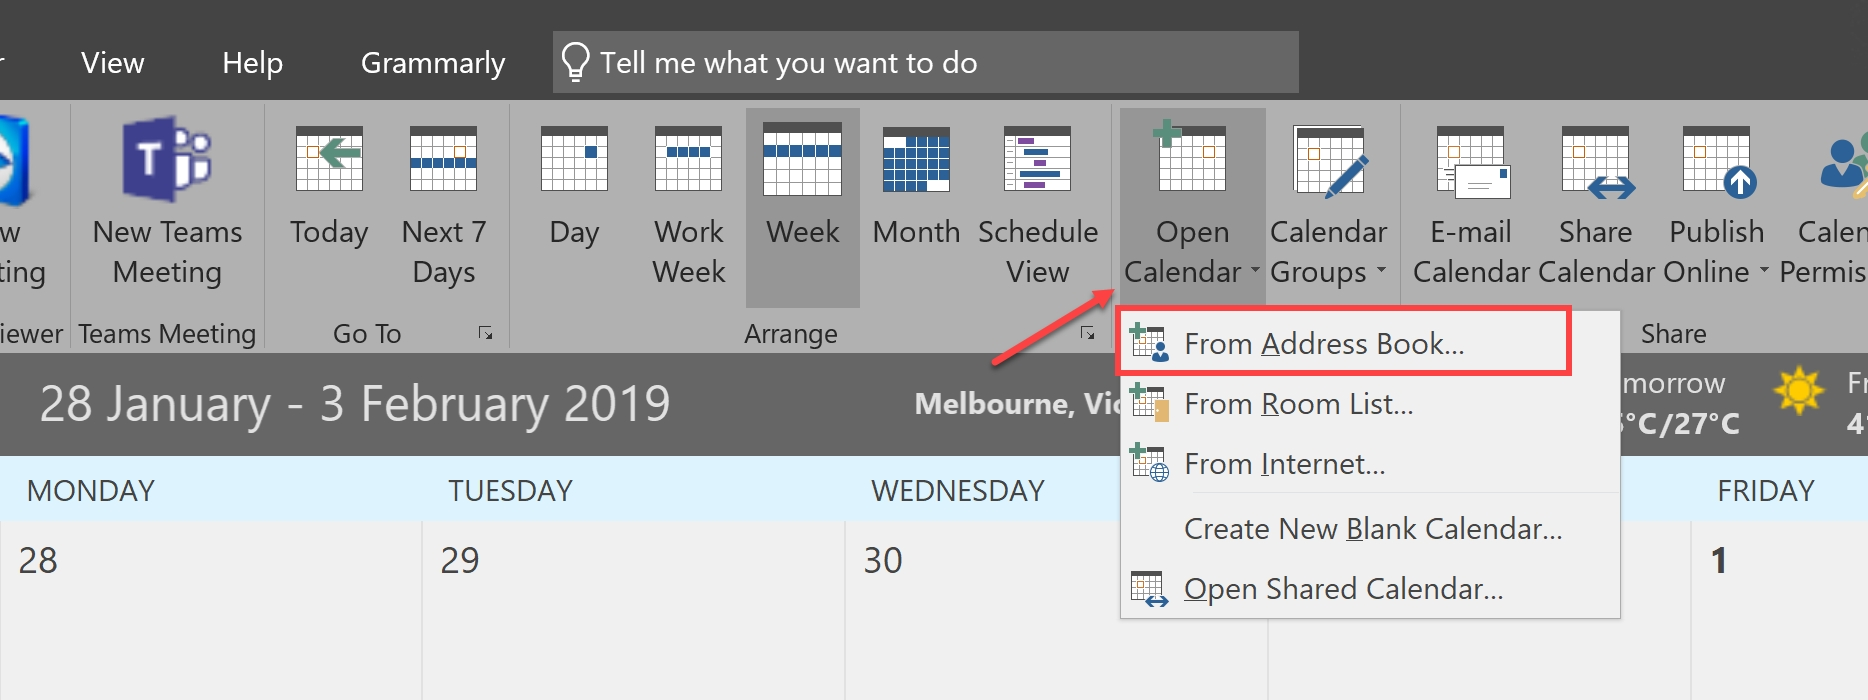 Ssw Rules] Calendar - Do You Know The Ways To See Others' Calendars? Perky Shared Calendar Is Blank